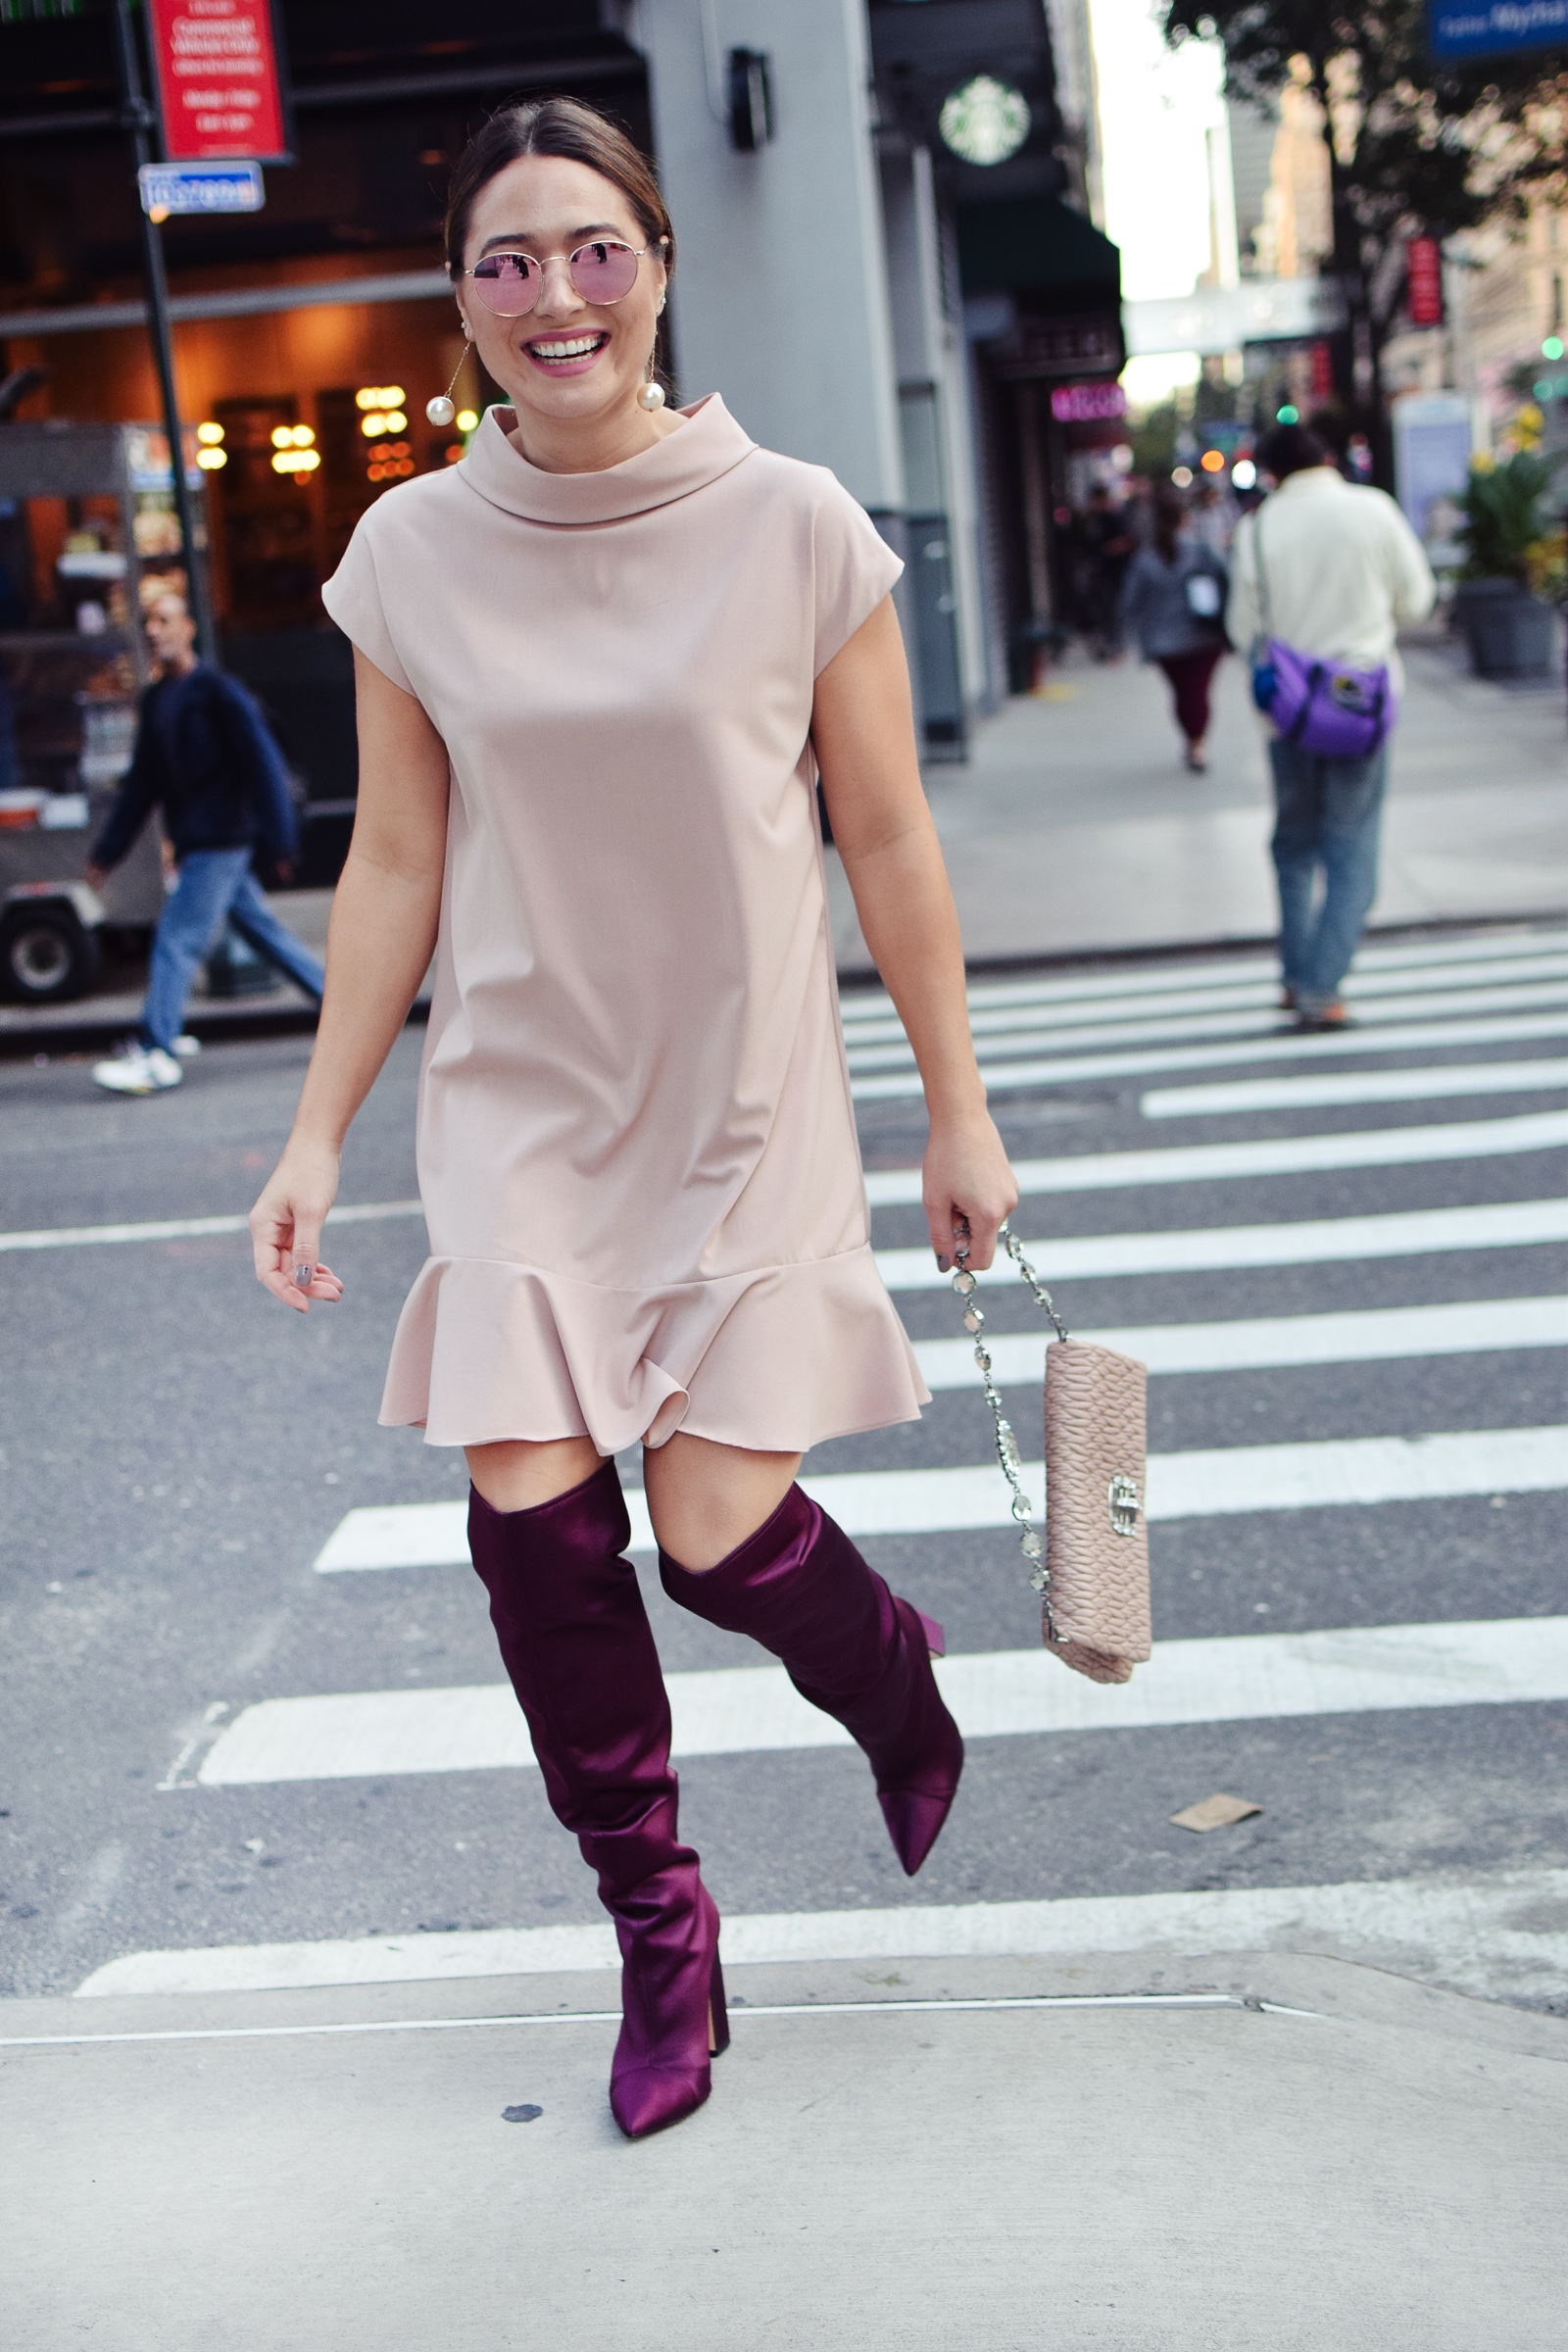 all-smiles-new-york-fashion-week-outfit-blush-dress-maroon-purple-boots-nyfw-blush-sunglasses-pearl-drop-earring-miu-miu-bag